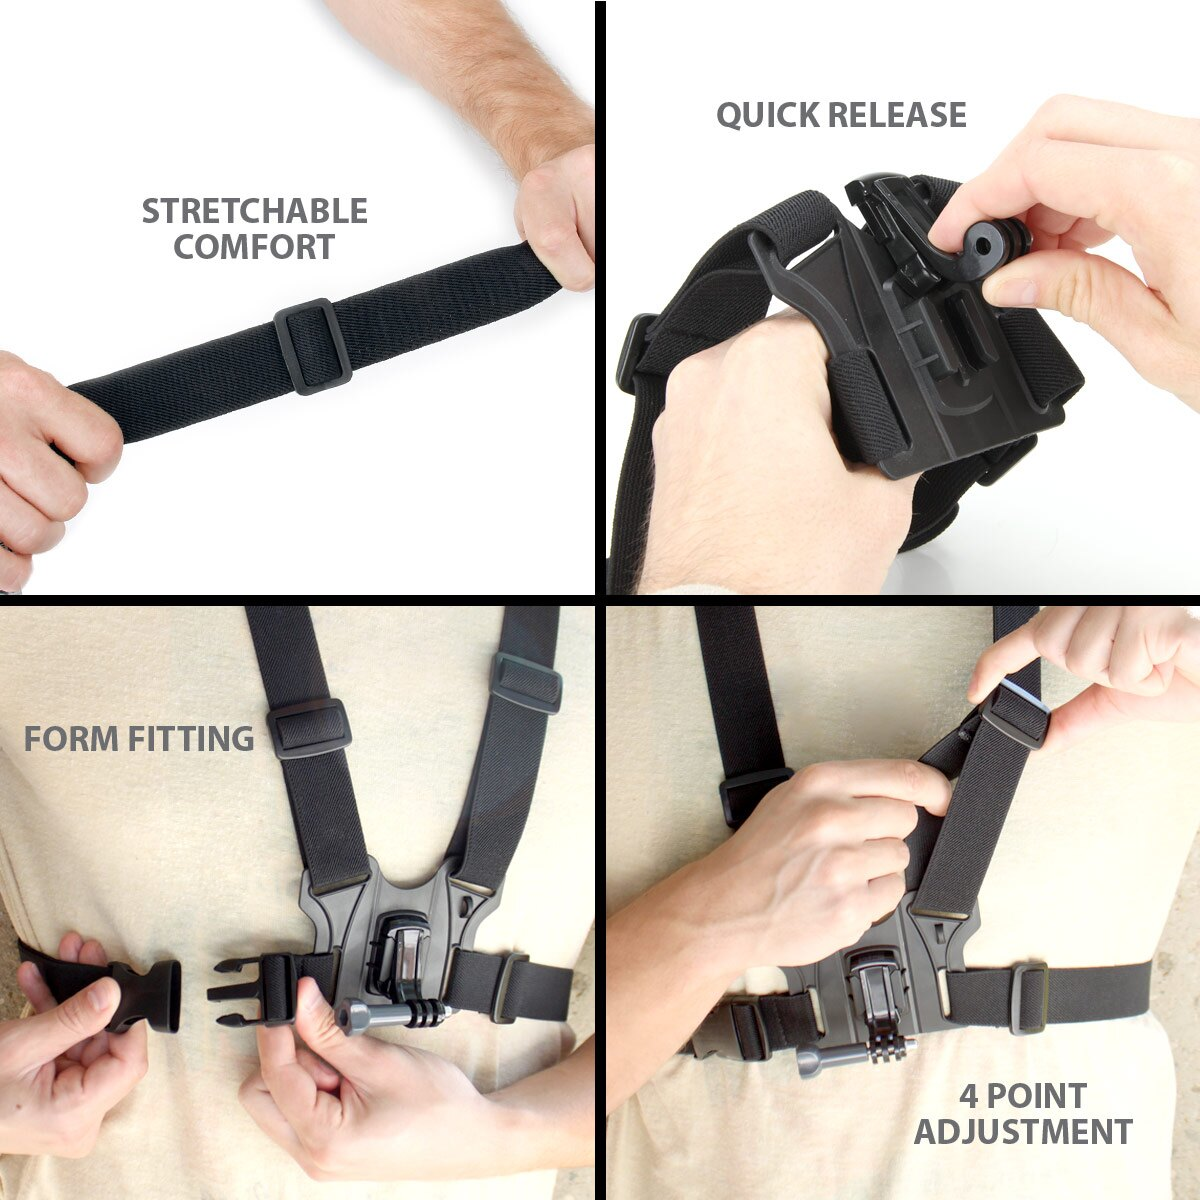 Tough Camera Chest Strap Mount with J Hook and Tripod Adapter by USA Gear - Works With Canon PowerShot D30 , Nikon Coolpix AW130 , Olympus TG-4 & More 2